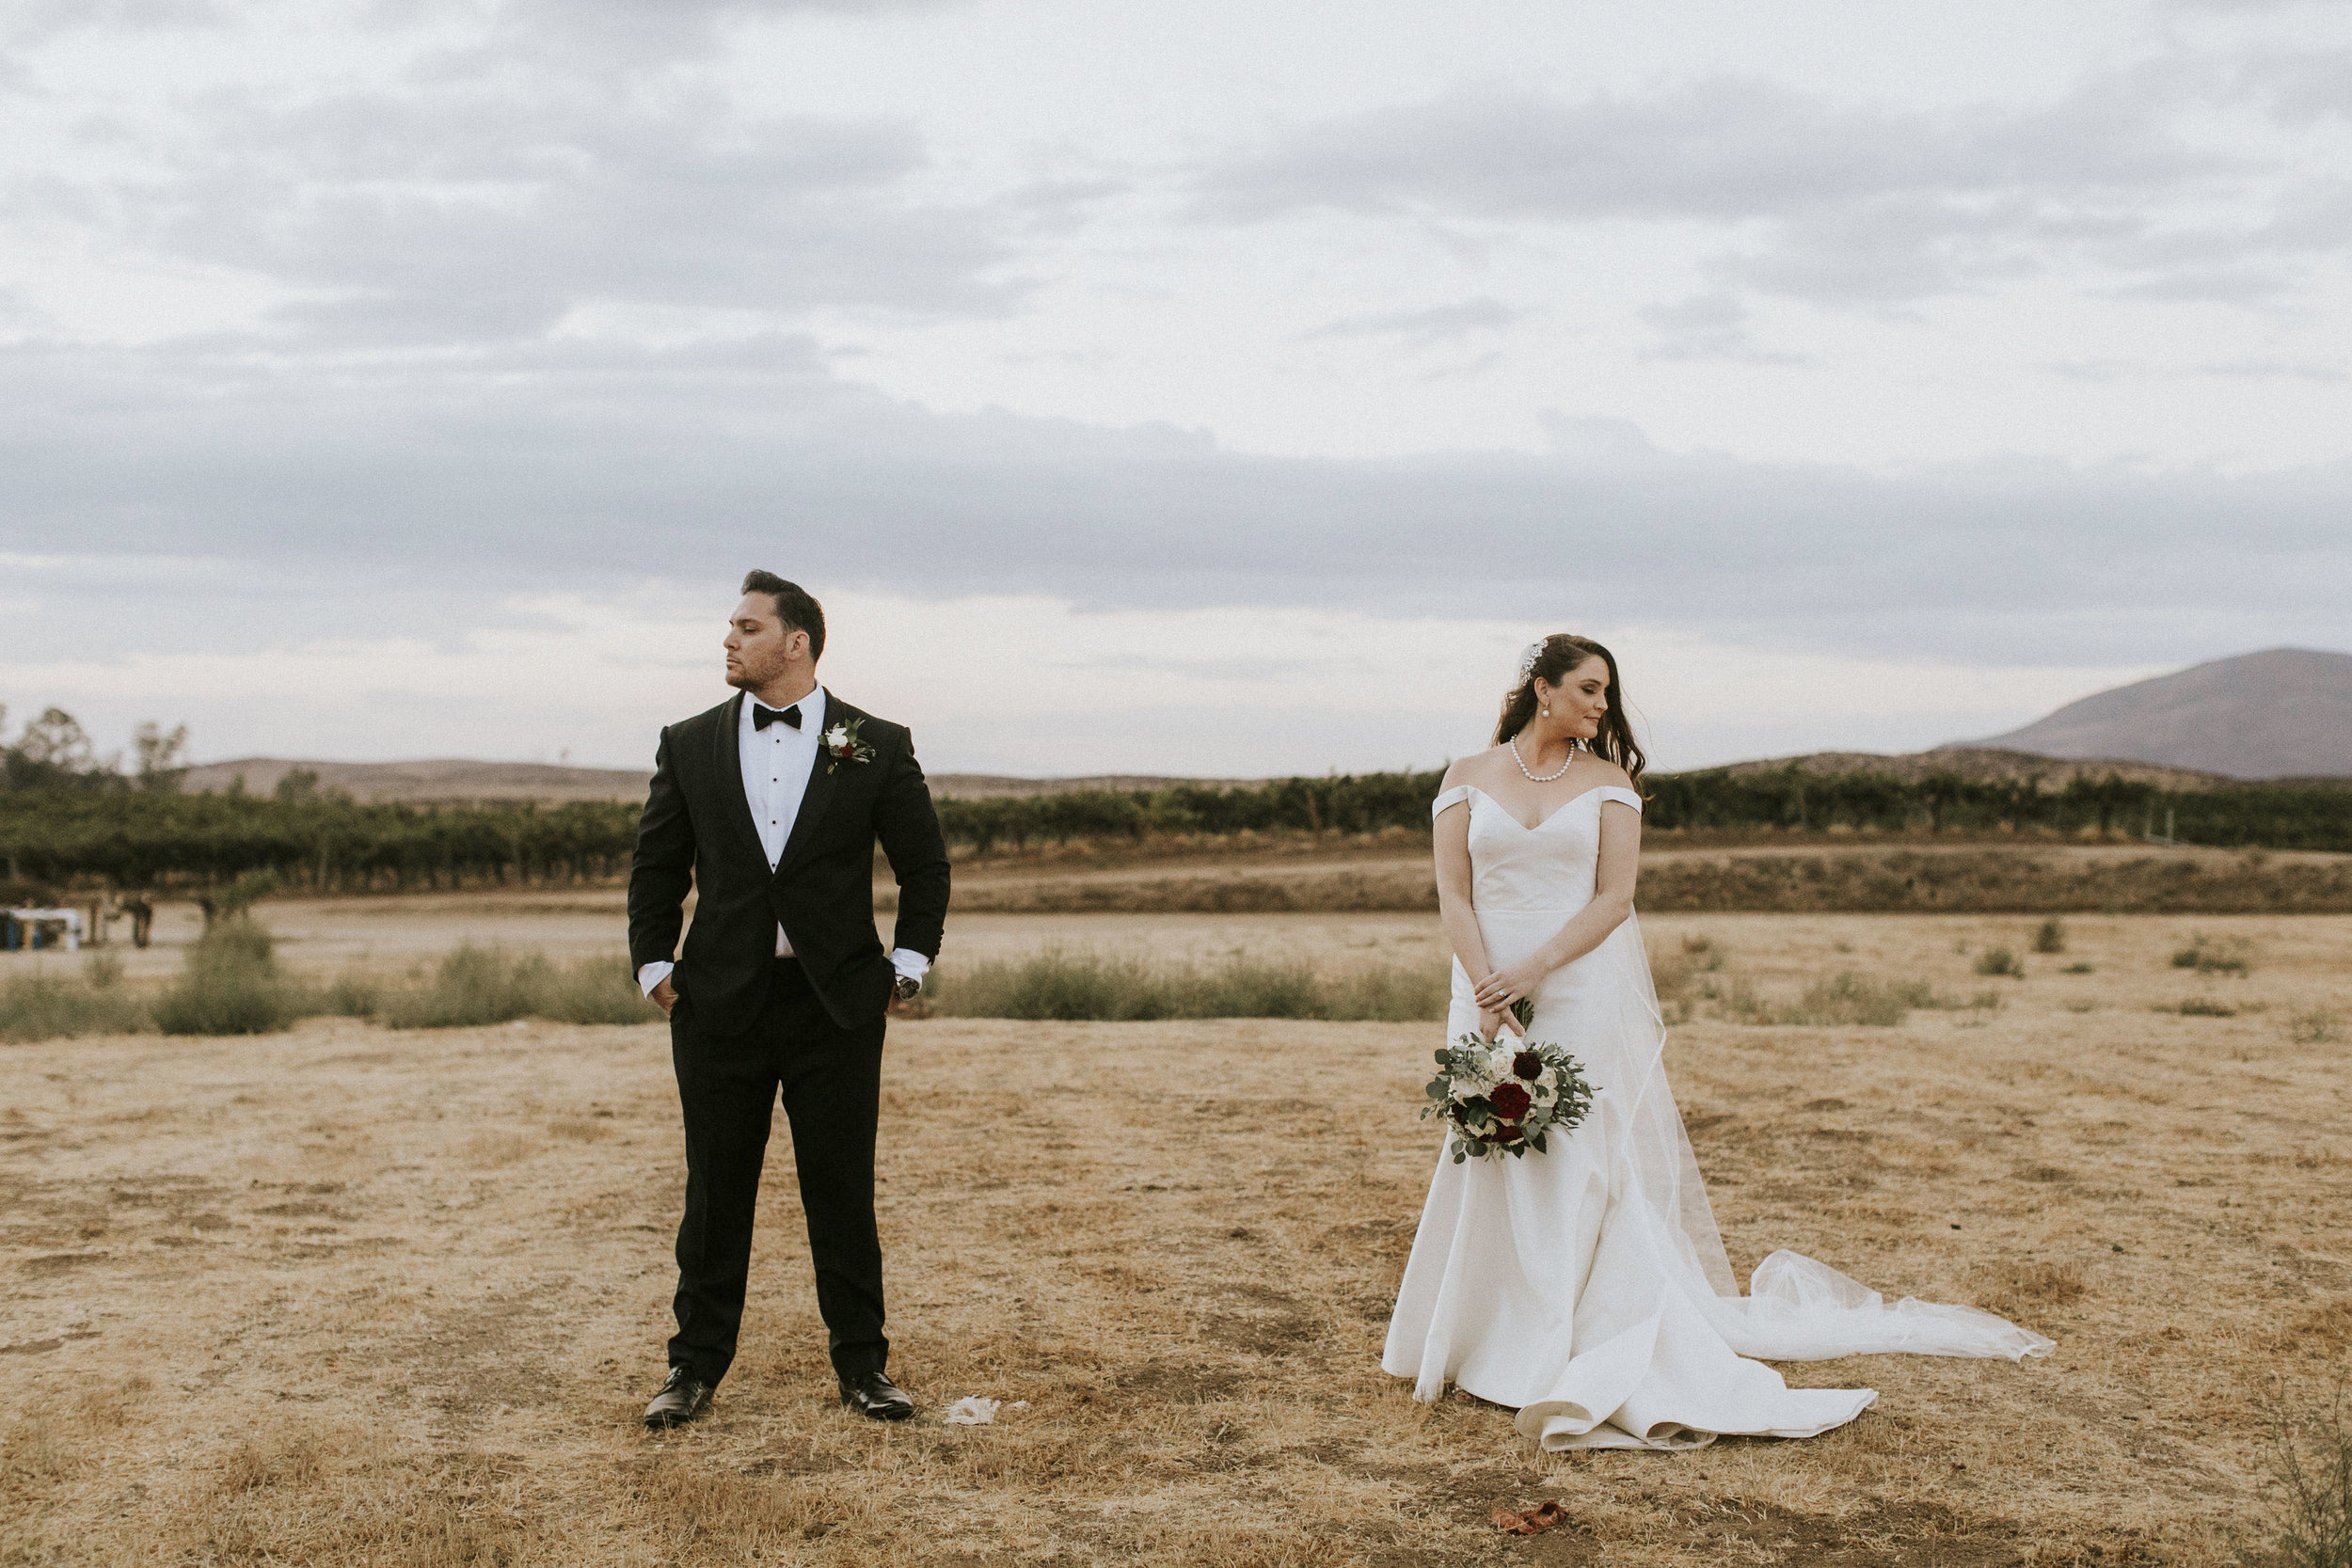 Domenica Beauty _ Hair and Makeup Artist _Wedding _ Temecula, CA _ Catherine and Darryl _ 45.JPG